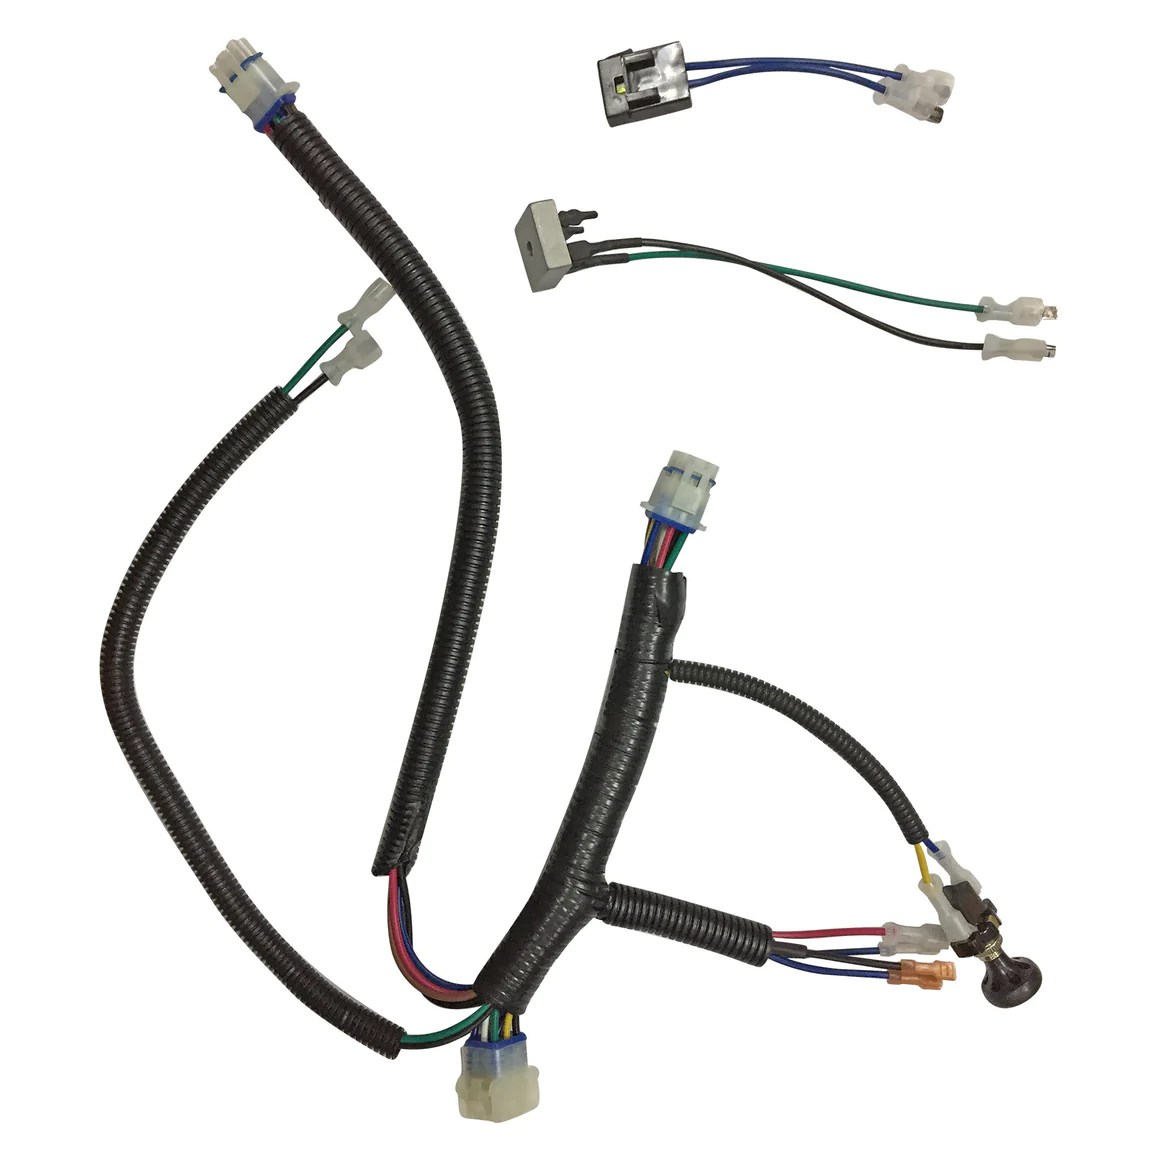 medium resolution of route 66 gas harness for club car precedent gas 2004 up